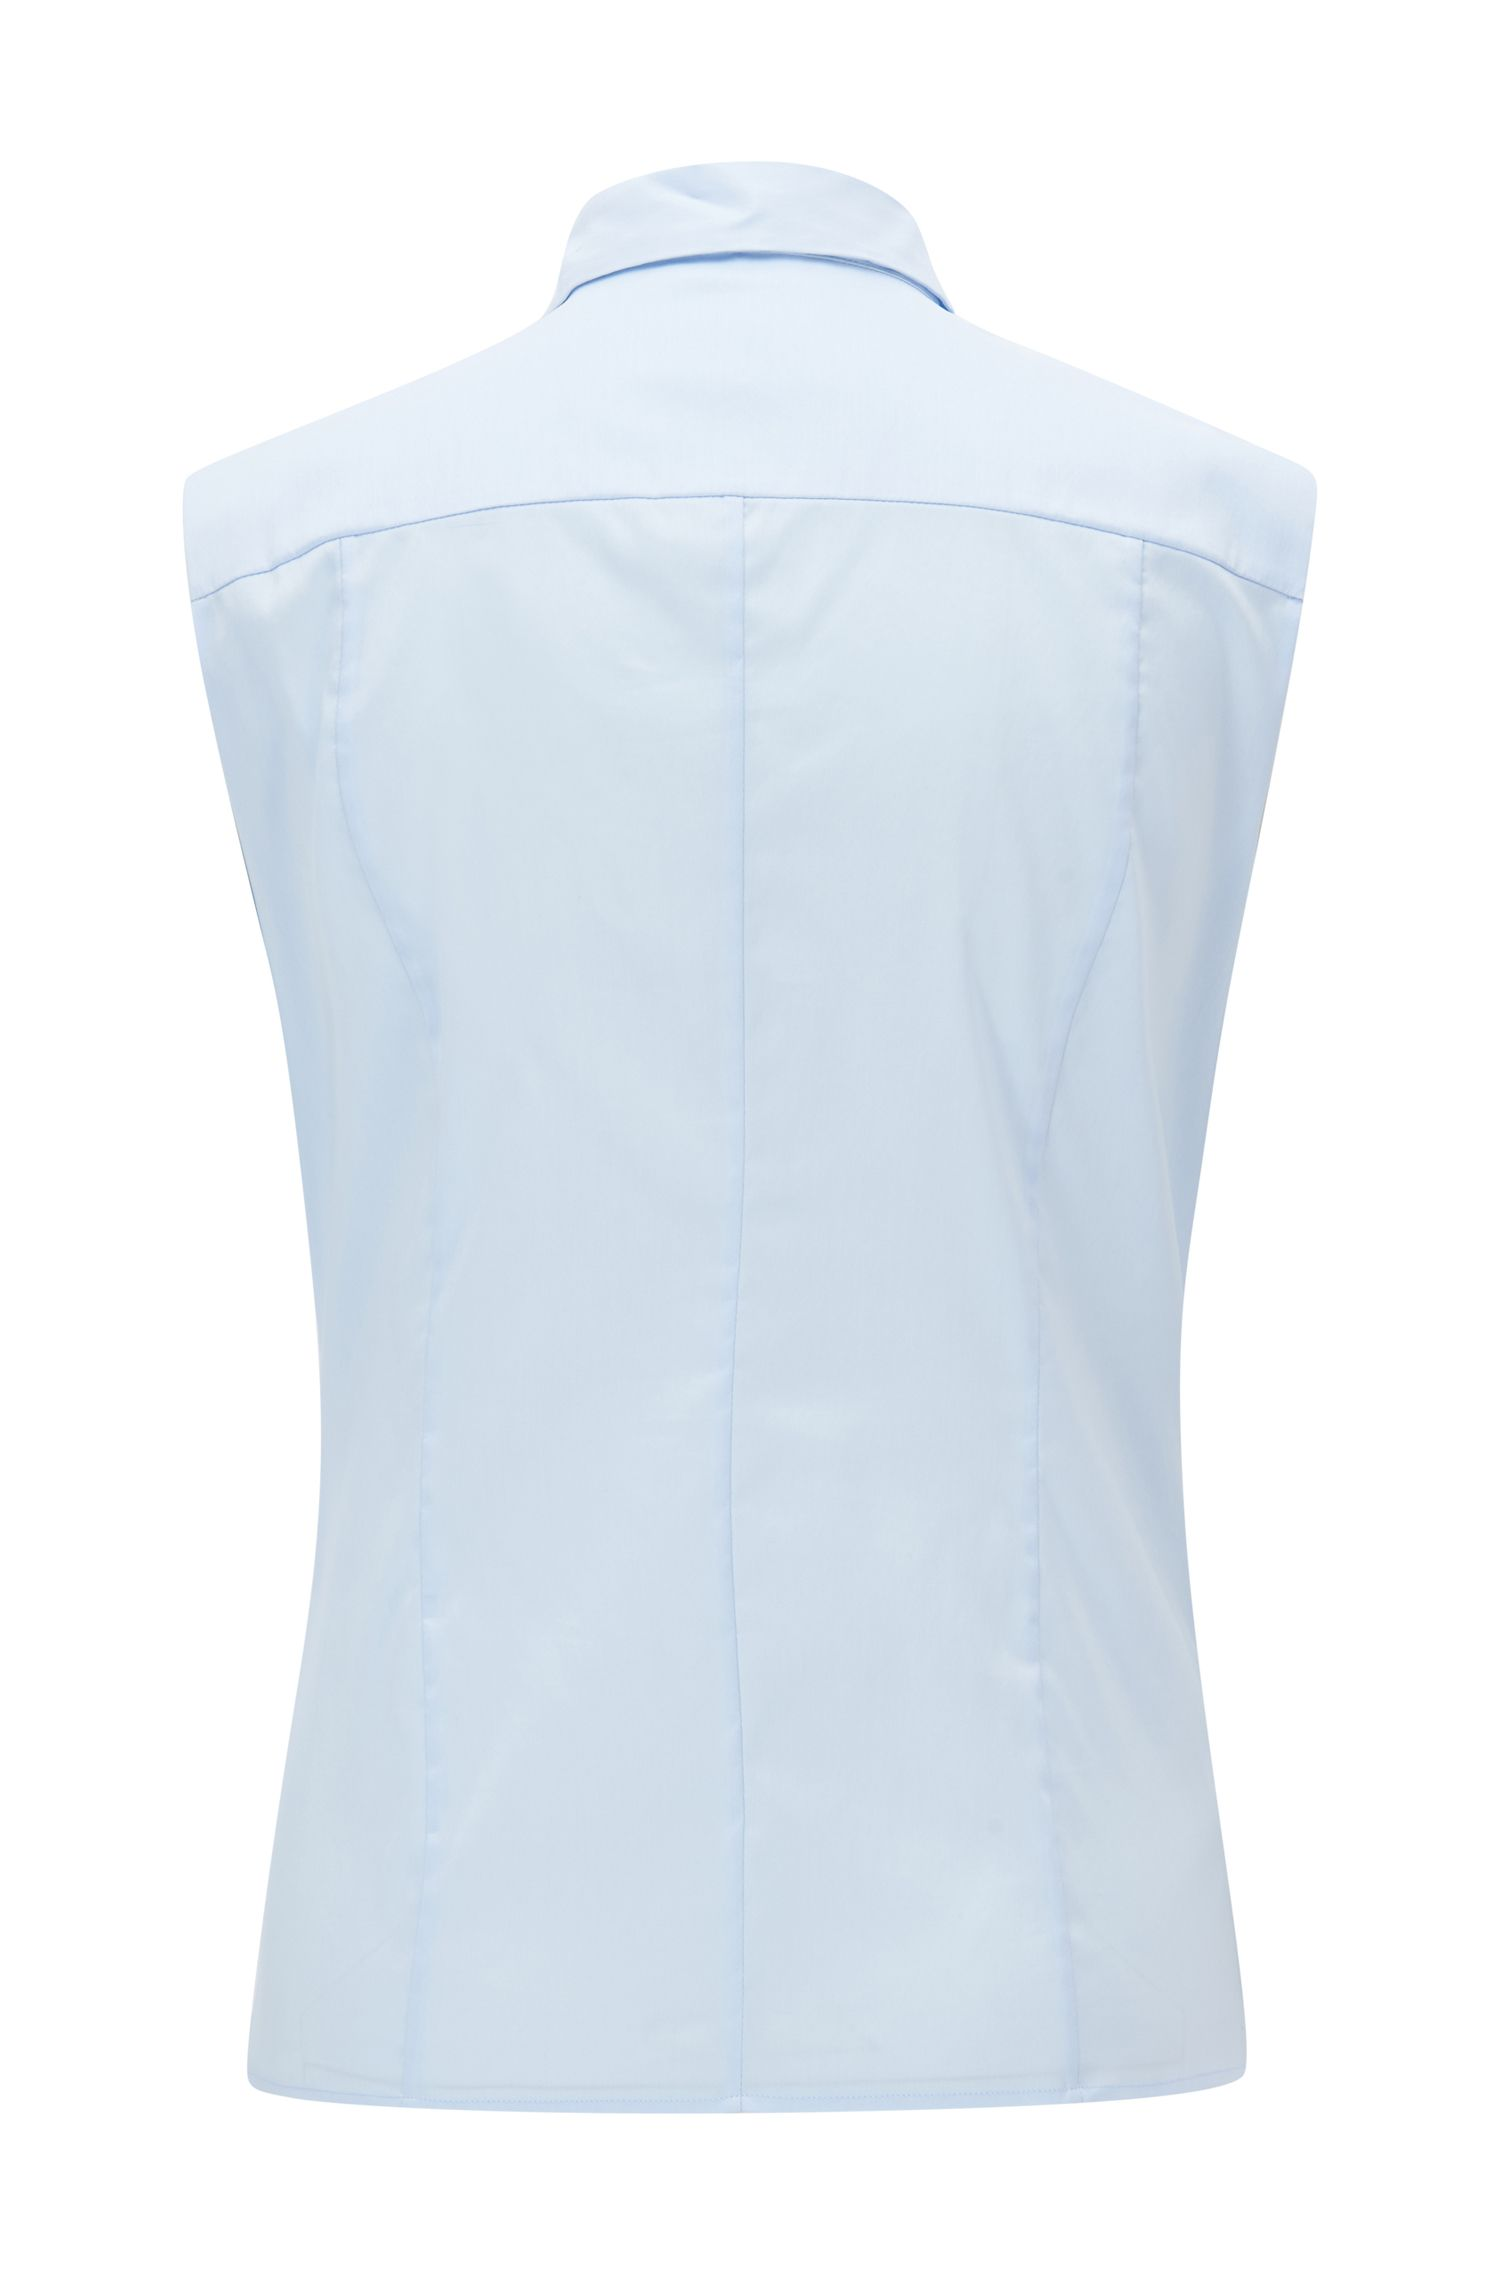 Slim-fit sleeveless blouse in a cotton blend